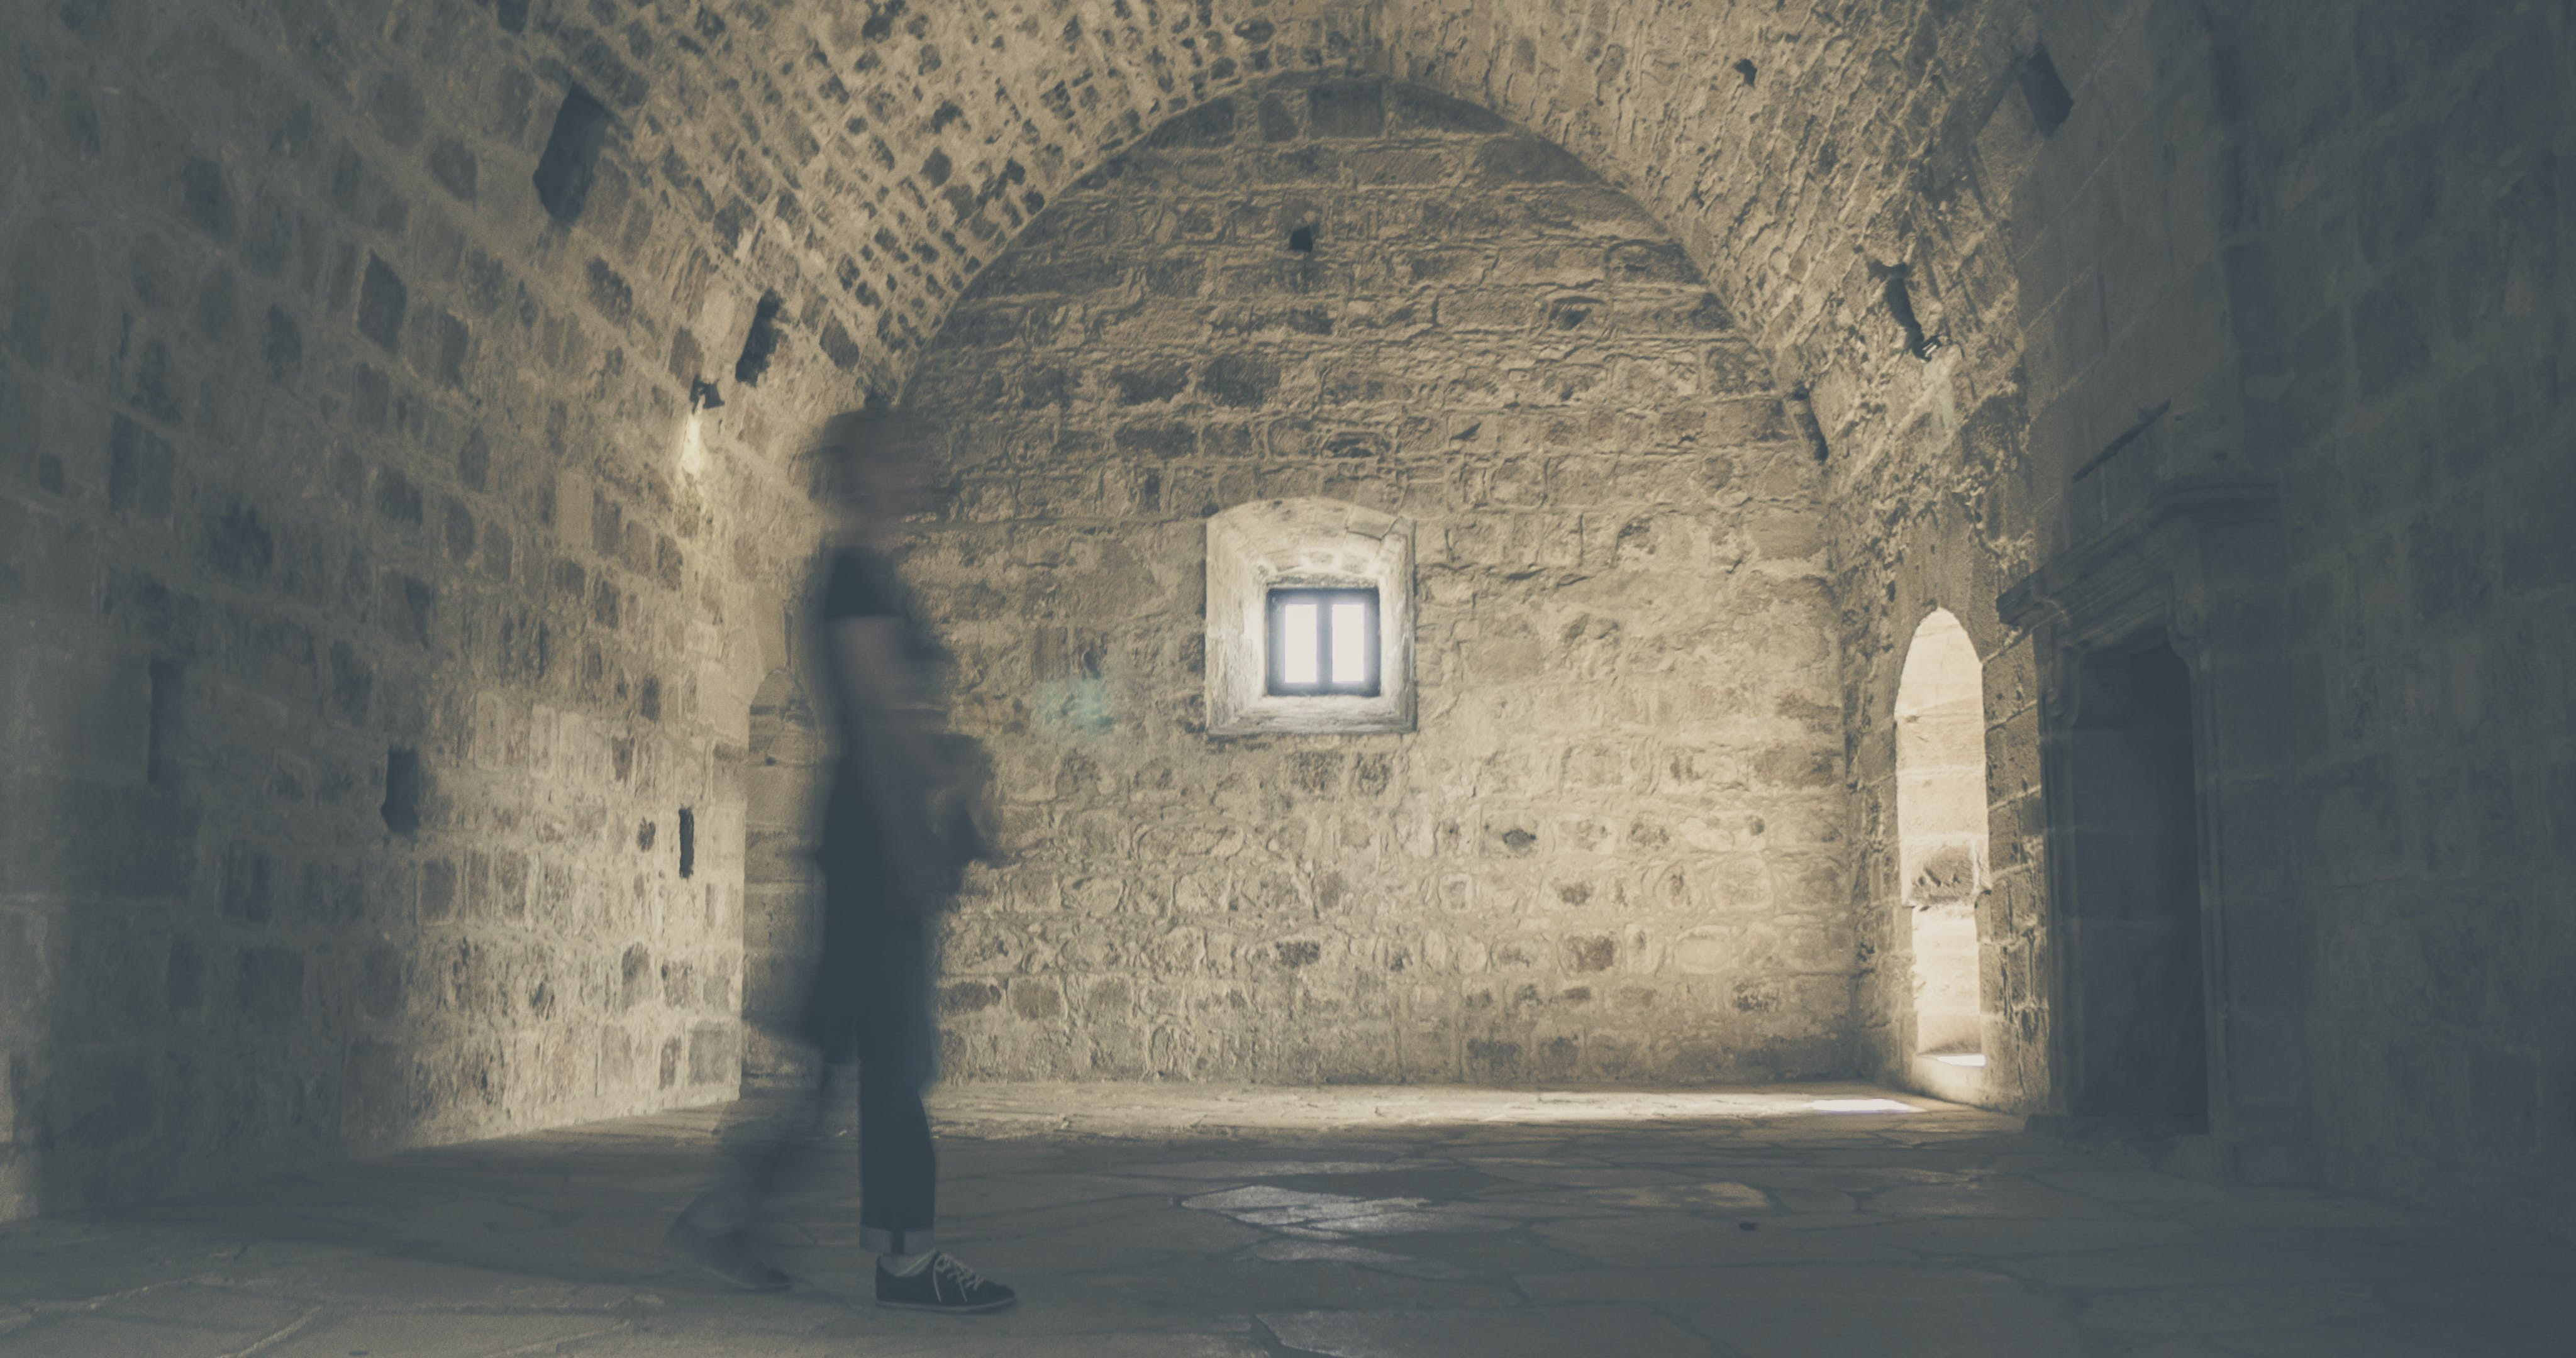 Free stock photo of silhouette, castle, shadow, brick